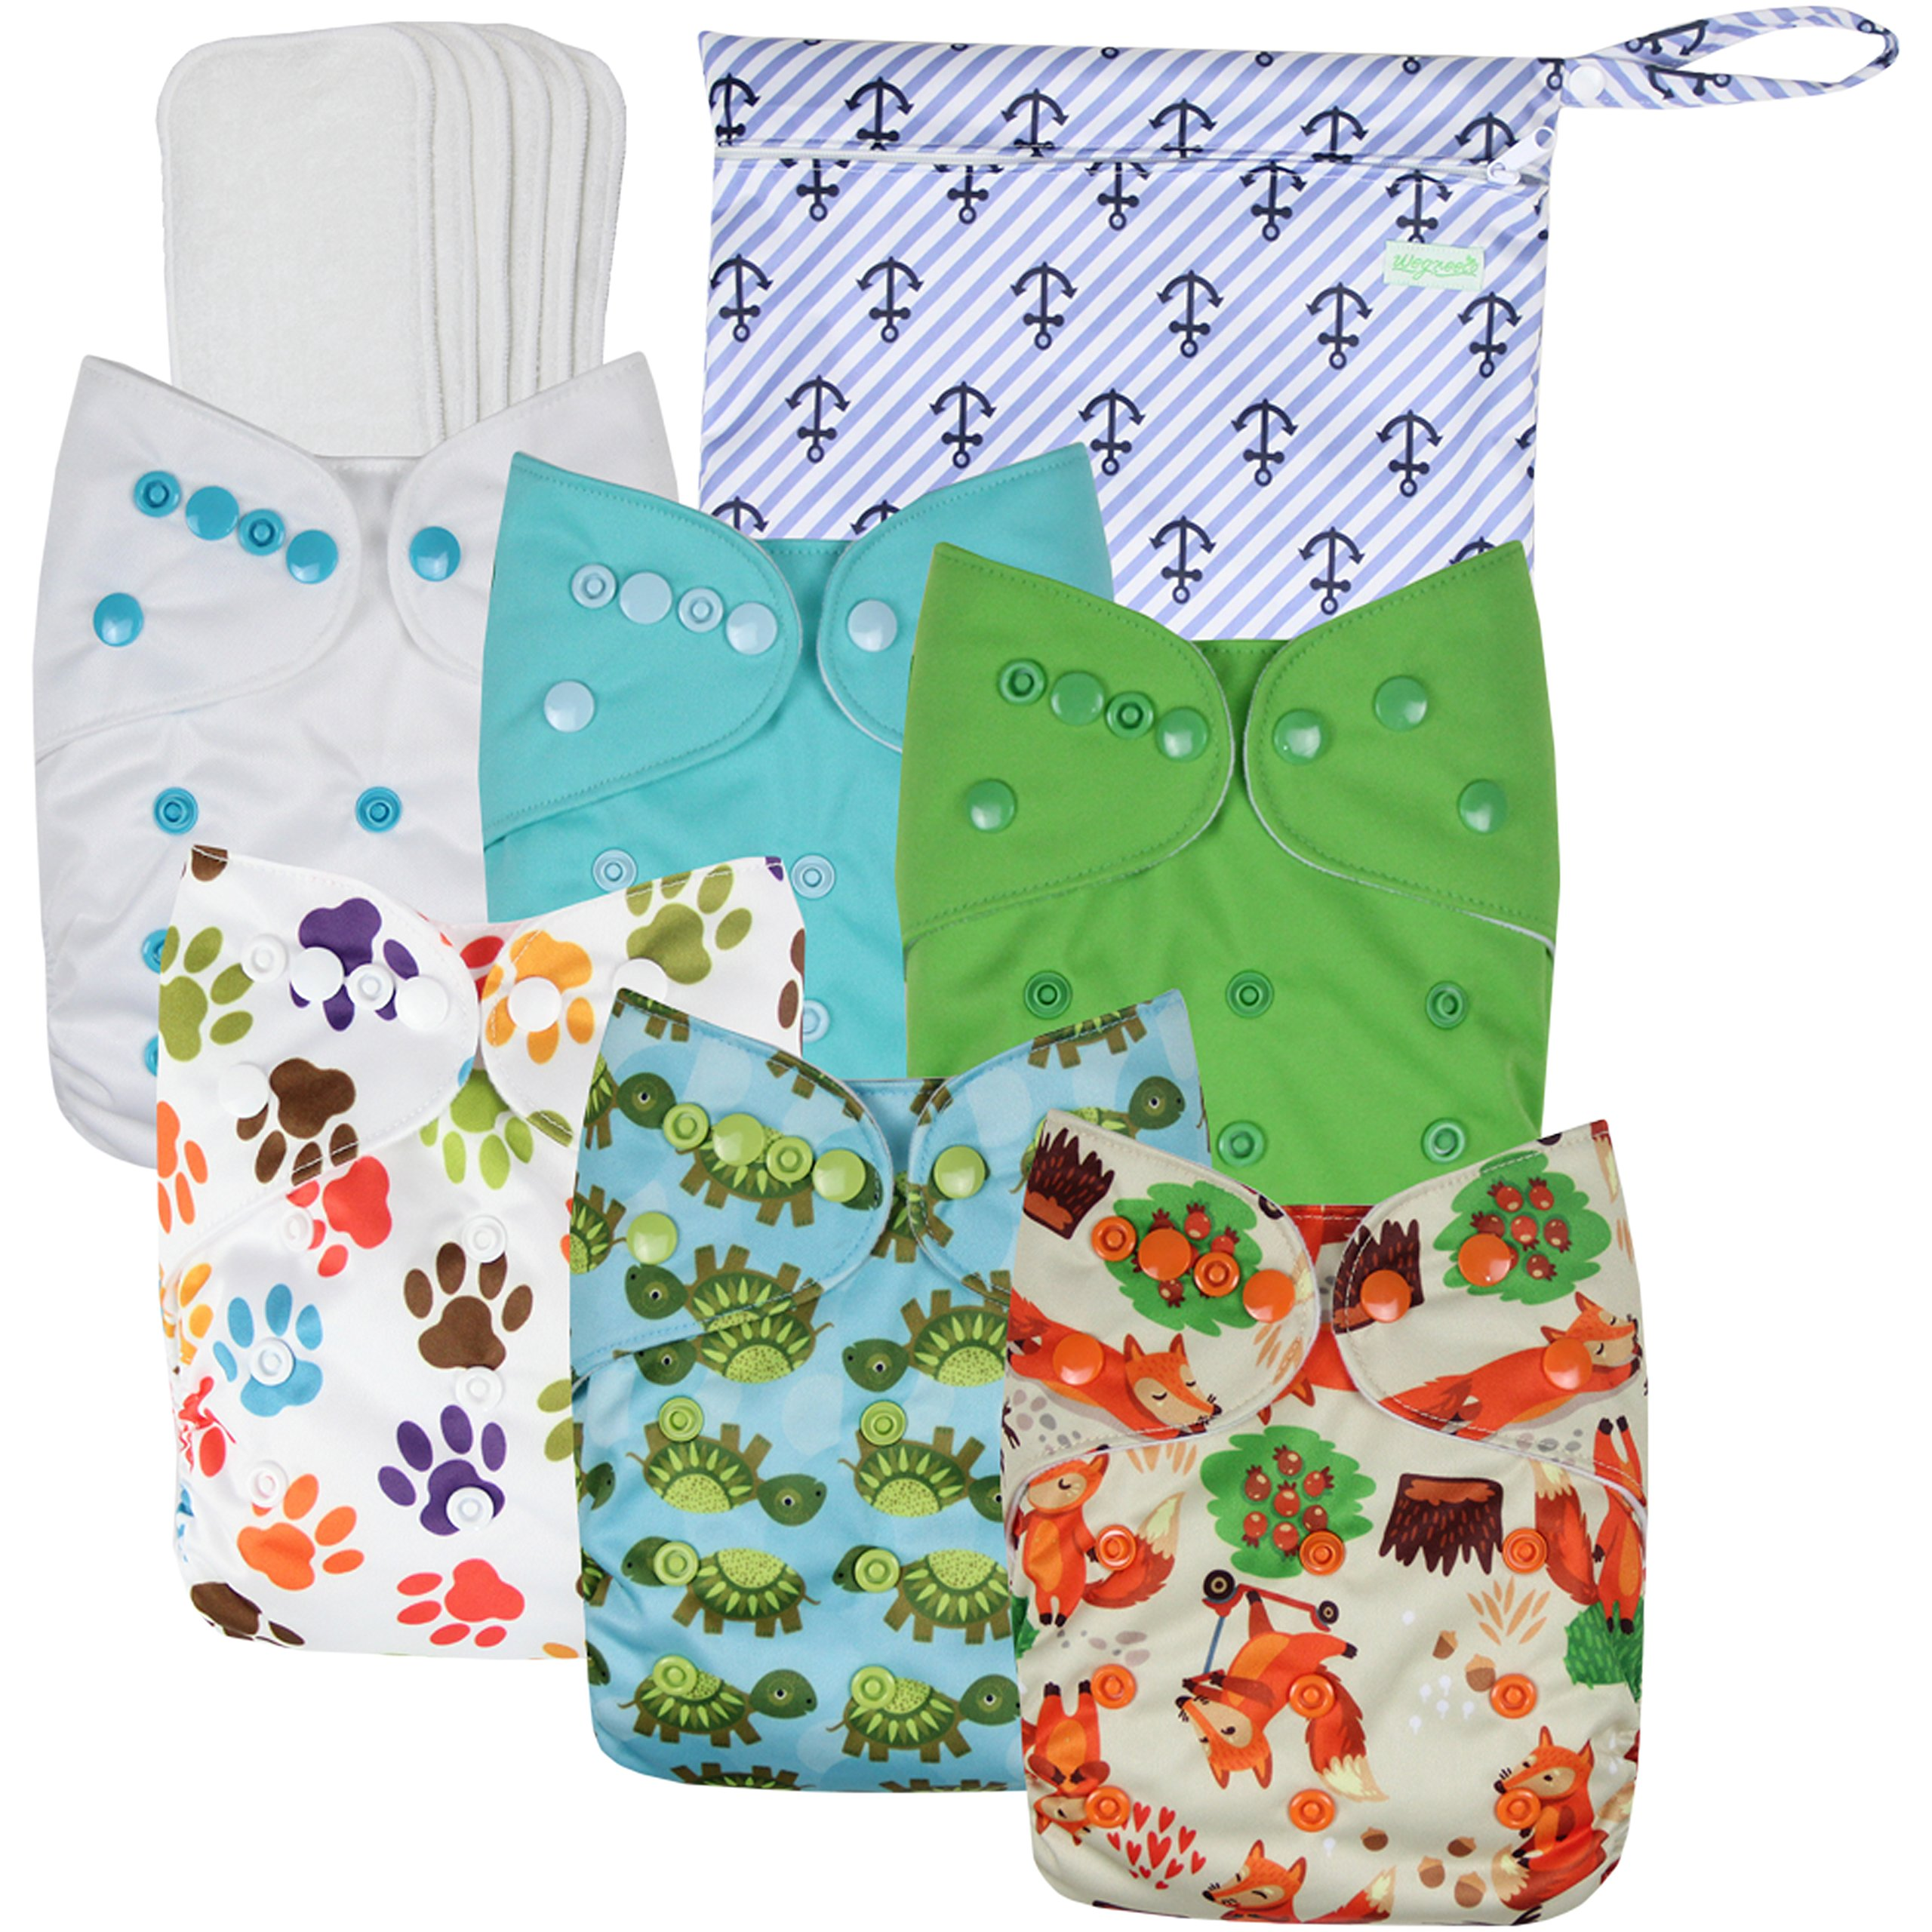 Wegreeco Washable Reusable Baby Cloth Pocket Diapers 6 Pack + 6 Bamboo Inserts (with 1 Wet Bag,Neutral Prints) by wegreeco